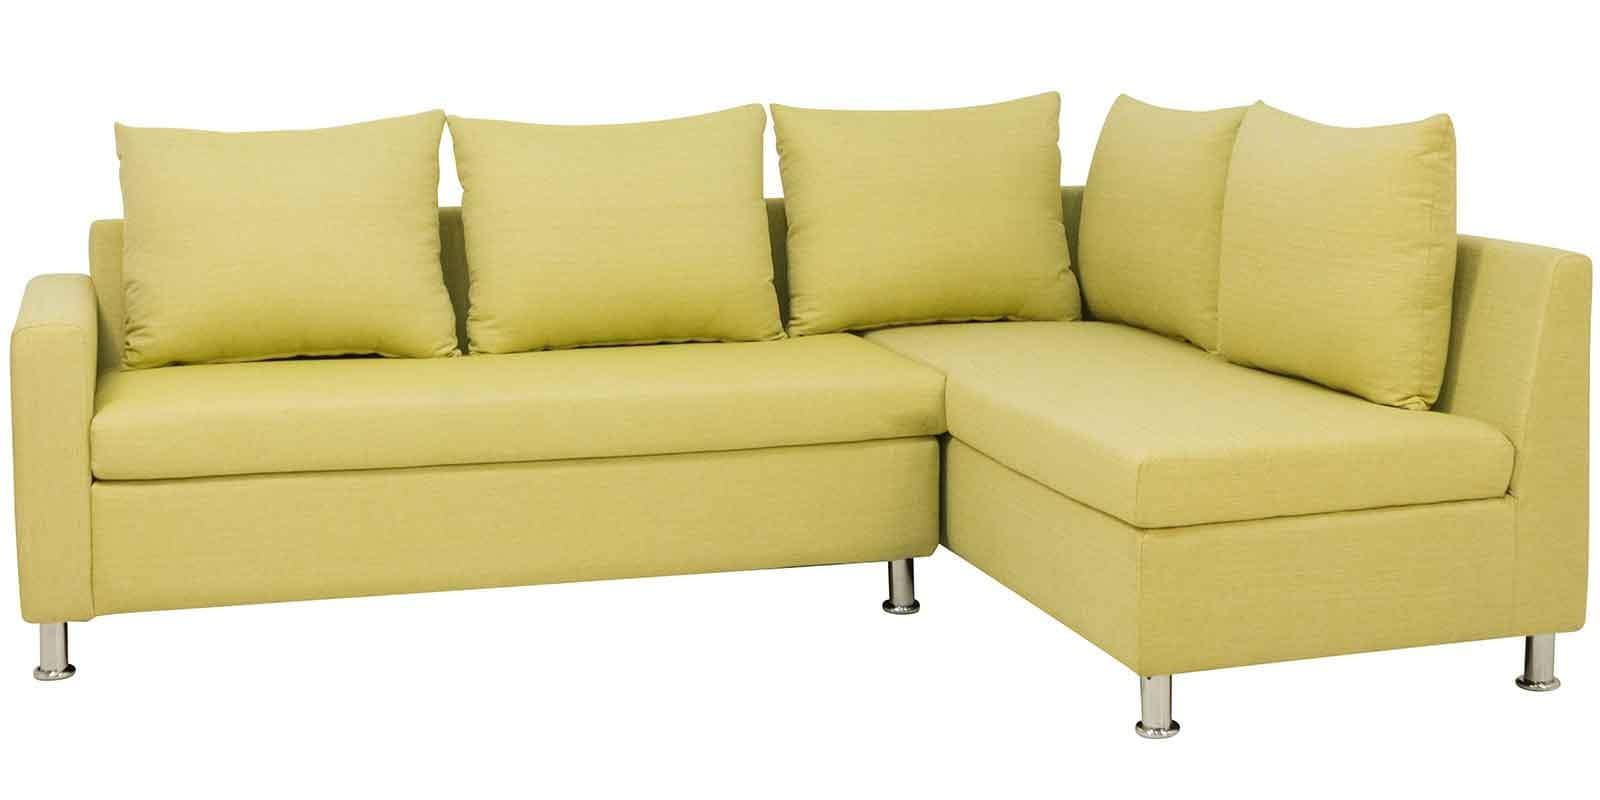 Picture of: Buy Orlando Lhs Sectional Sofa In Olive Green Colour By Urban Living Online Sectional Sofas Sectional Sofas Furniture Pepperfry Product